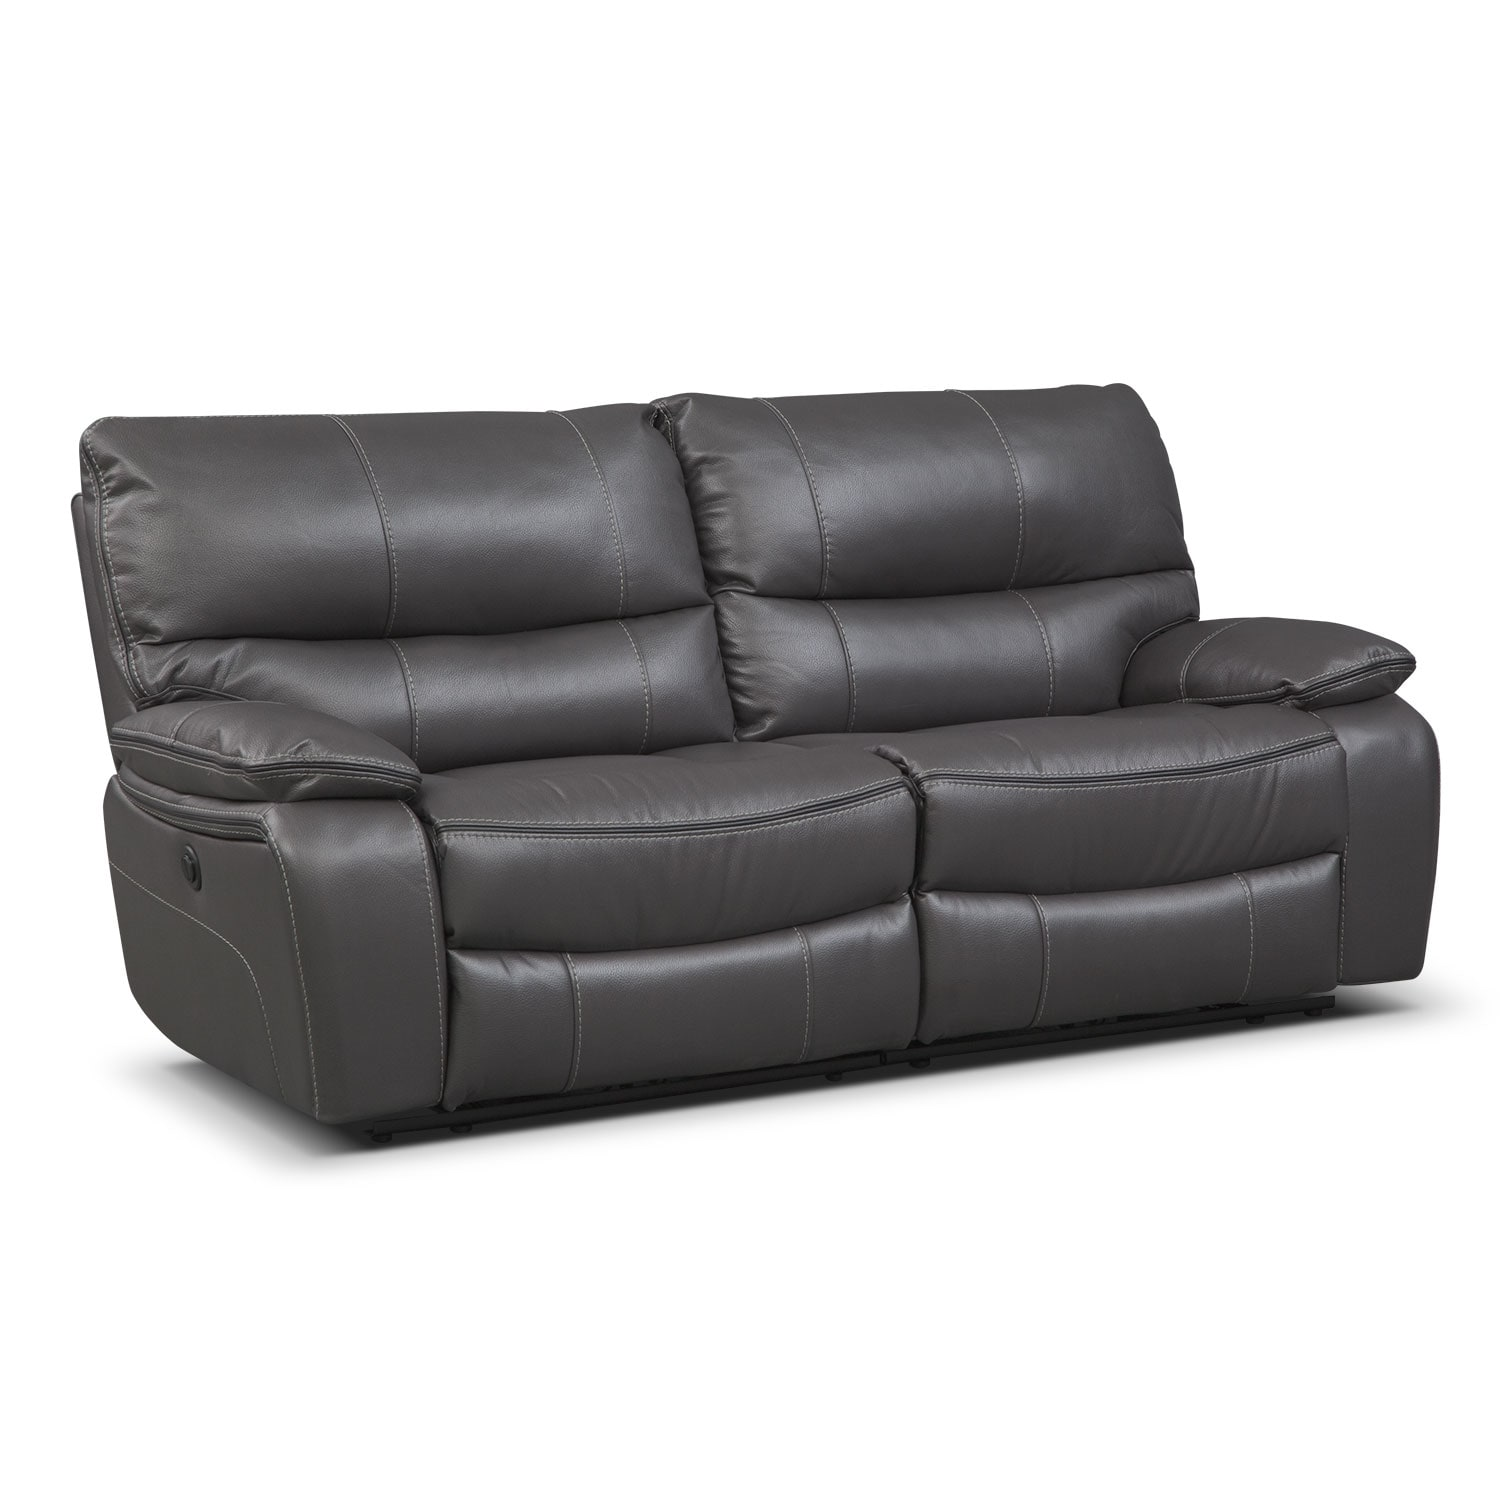 Living Room Furniture - Orlando 2 Pc. Power Sectional